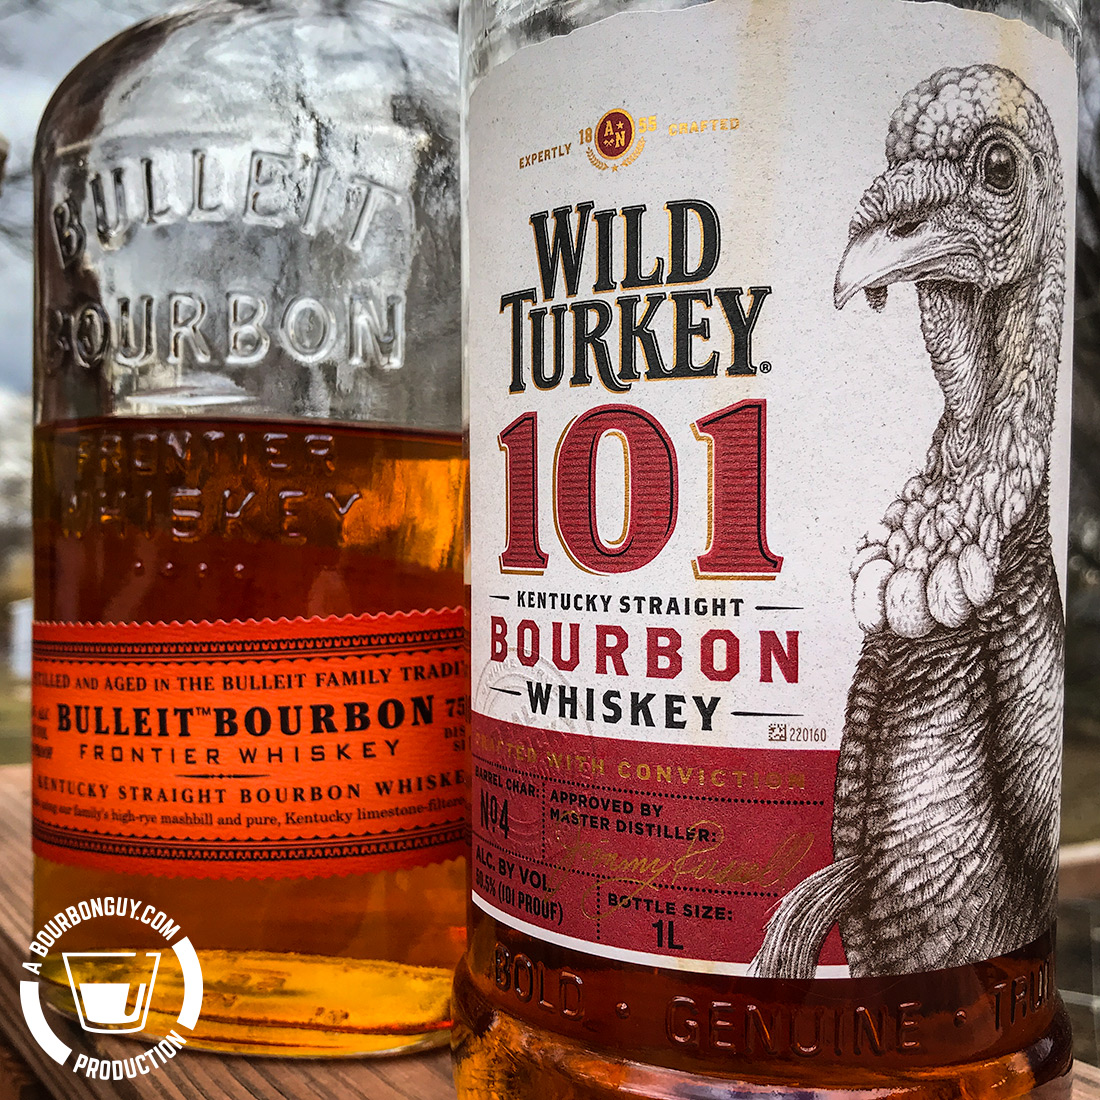 IMAGE: Front labels of Bulleit Bourbon and Wild Turkey 101 Bourbon